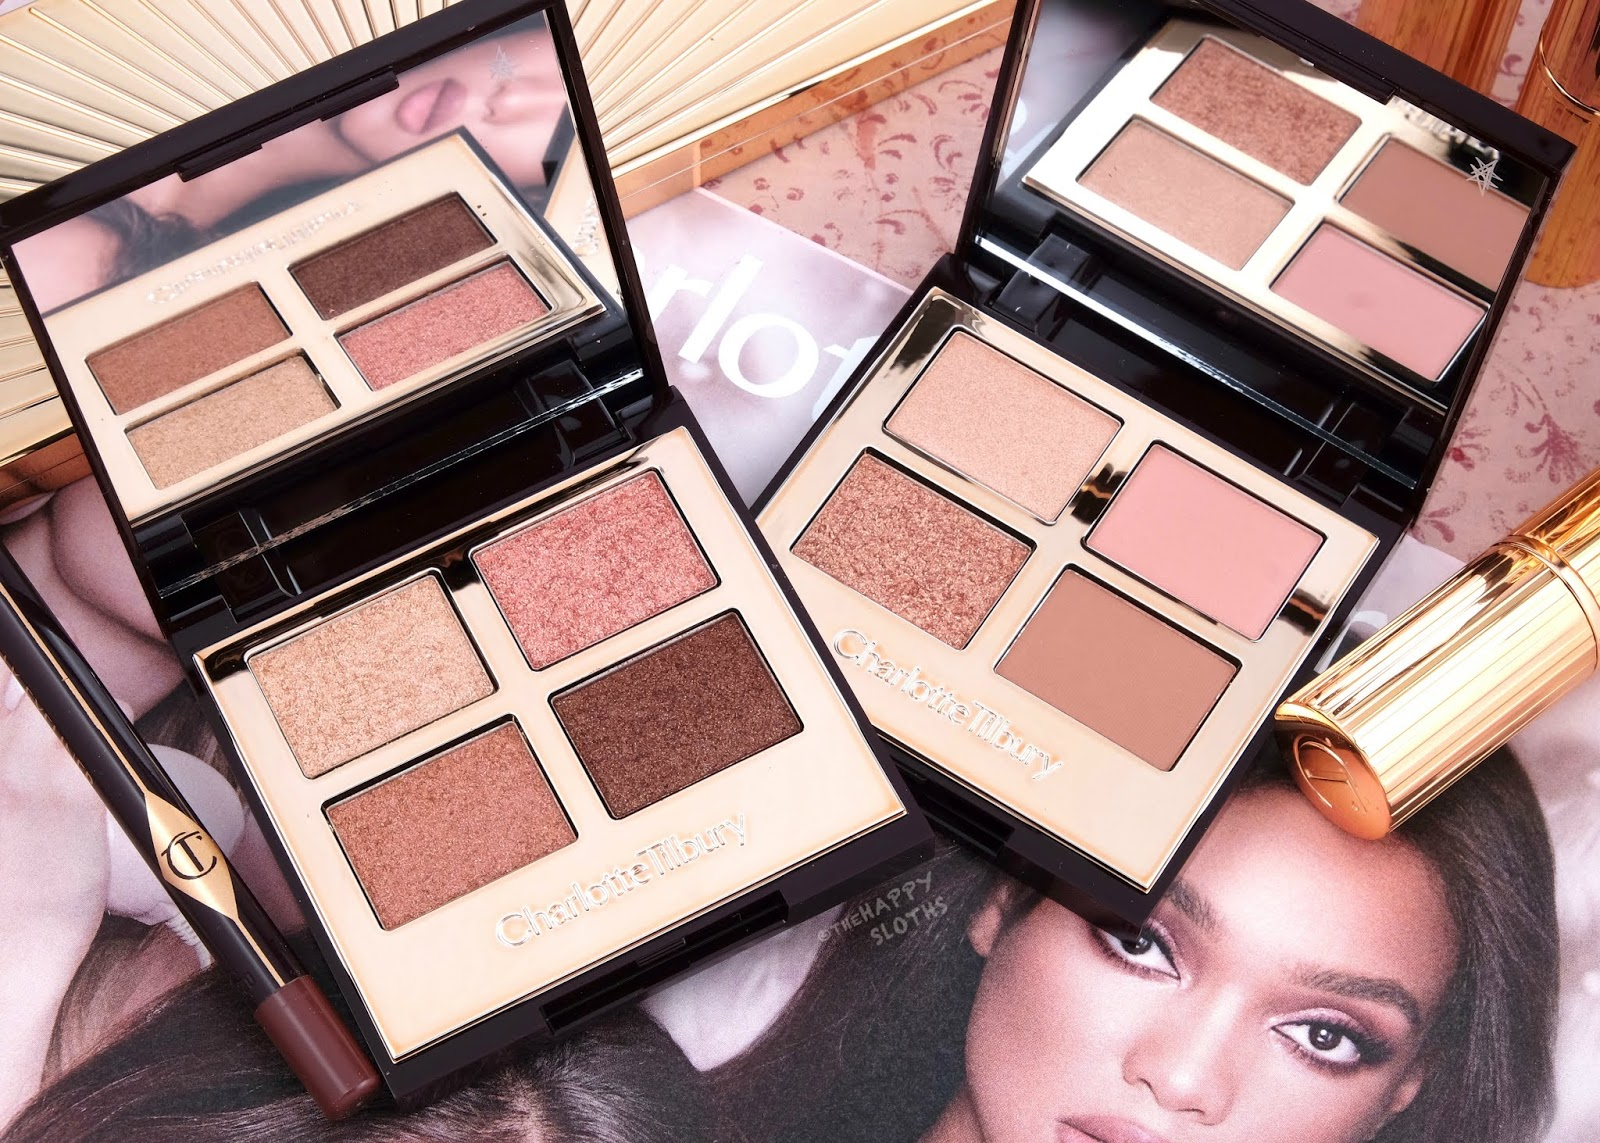 Charlotte Tilbury | Pillow Talk Luxury Palette & Pillow Talk Luxury Palette of Pops: Review and Swatches